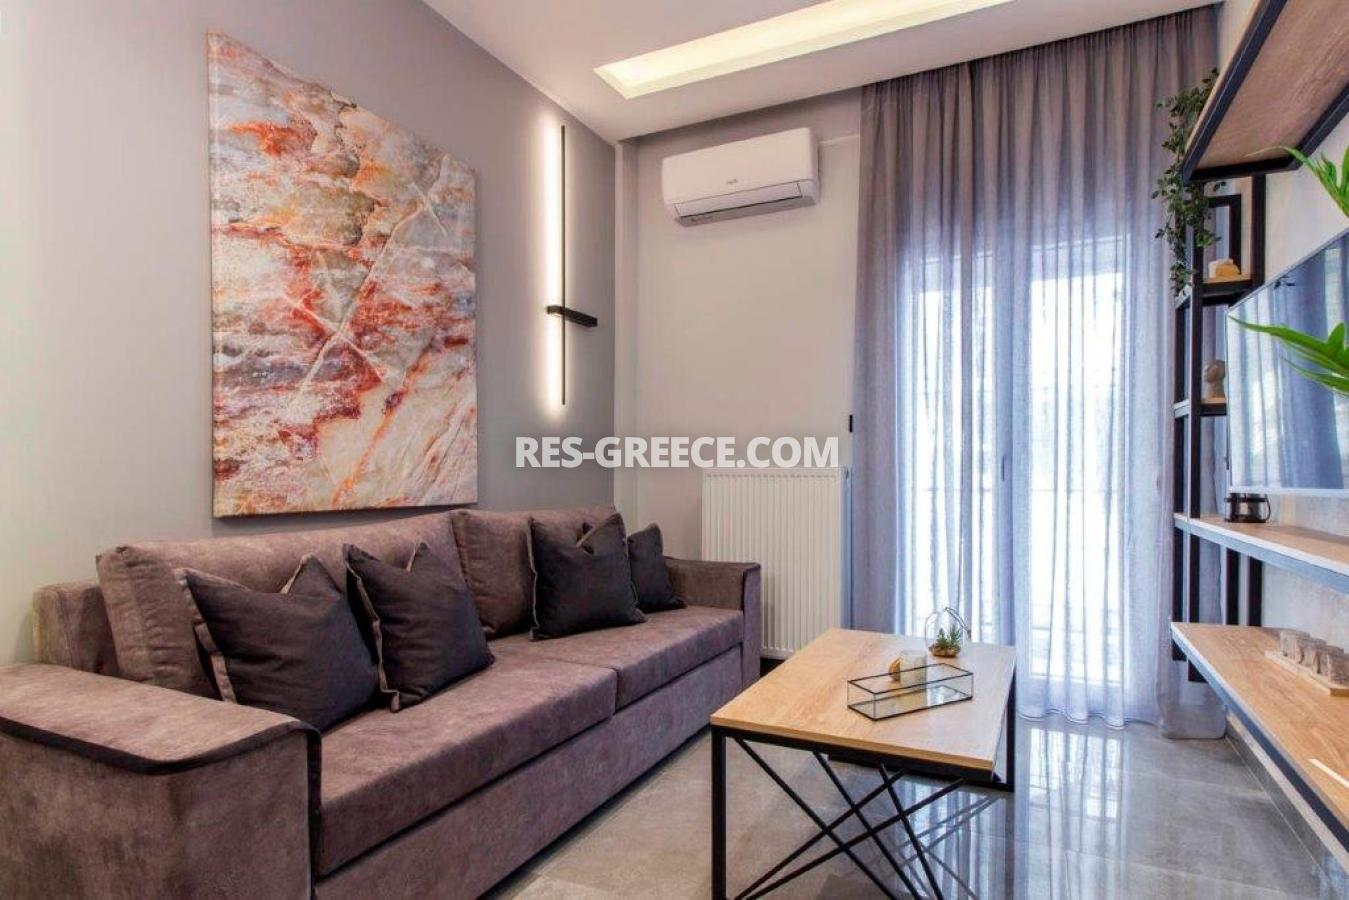 N.Foka A, Central Macedonia, Greece - apartments in Thessaloniki center for long-term or short-term rent - Photo 3